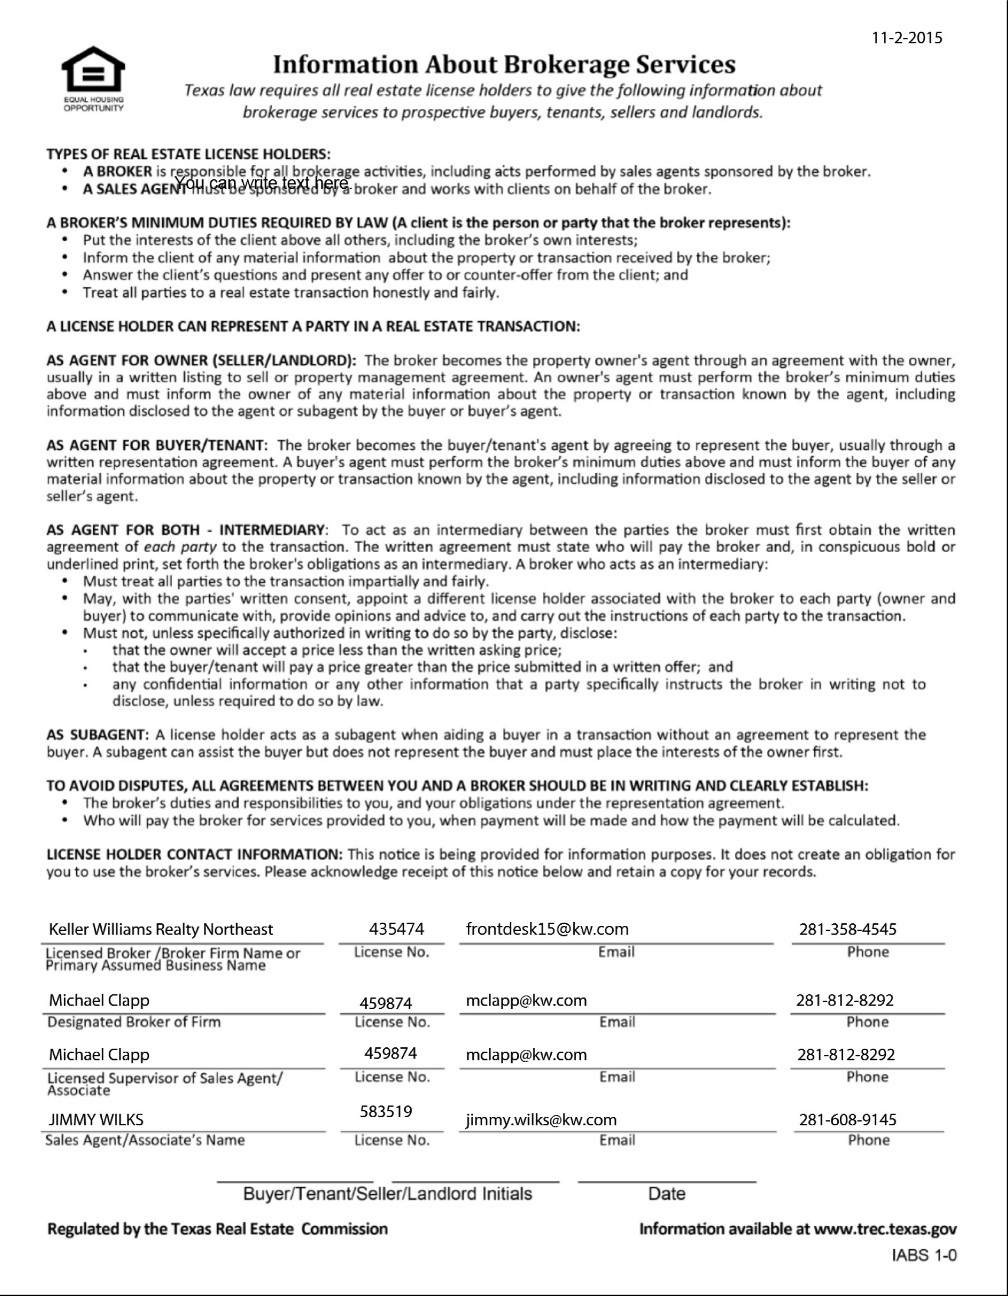 Texas Real Estate Commission (TREC) Information About Brokerage Services Form-18